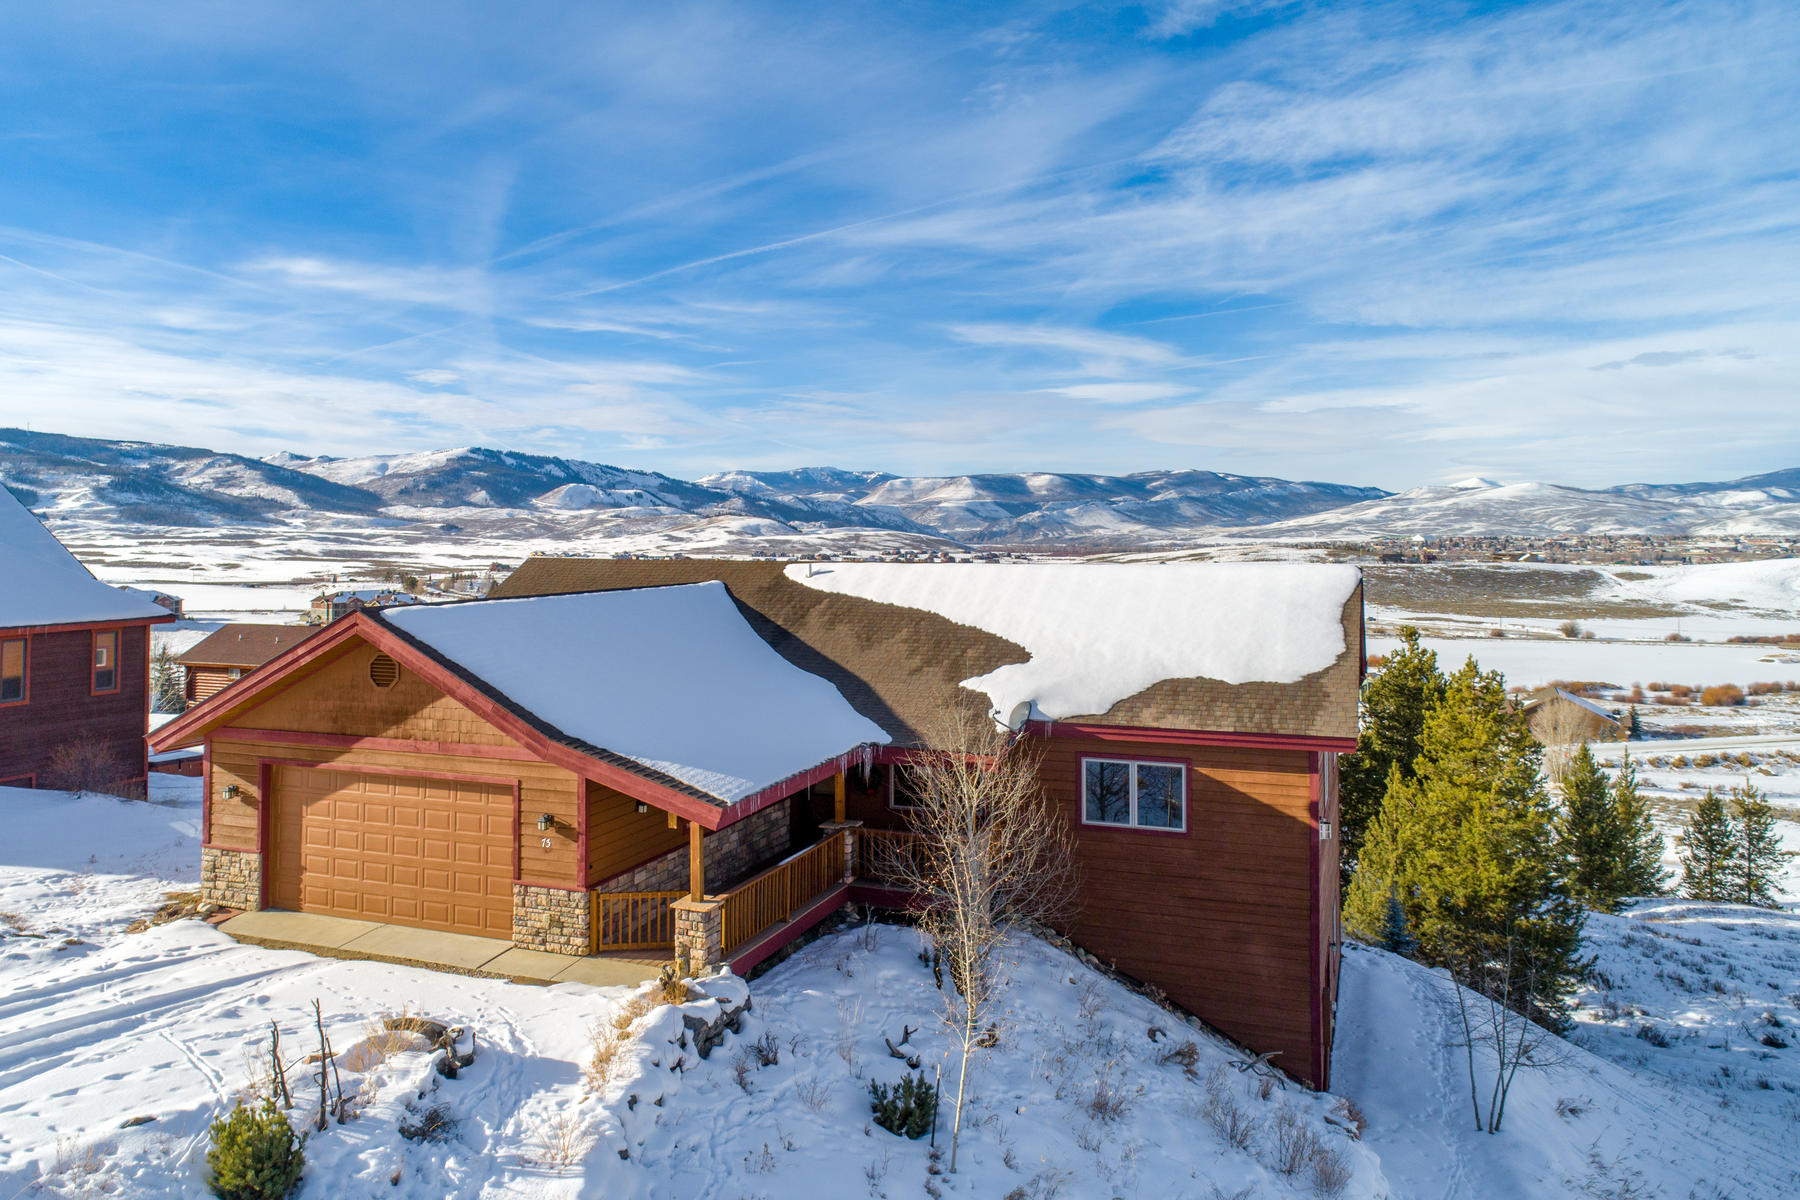 Single Family Home for Active at Exceptional in style and function! 73 Forrest Dr Granby, Colorado 80446 United States